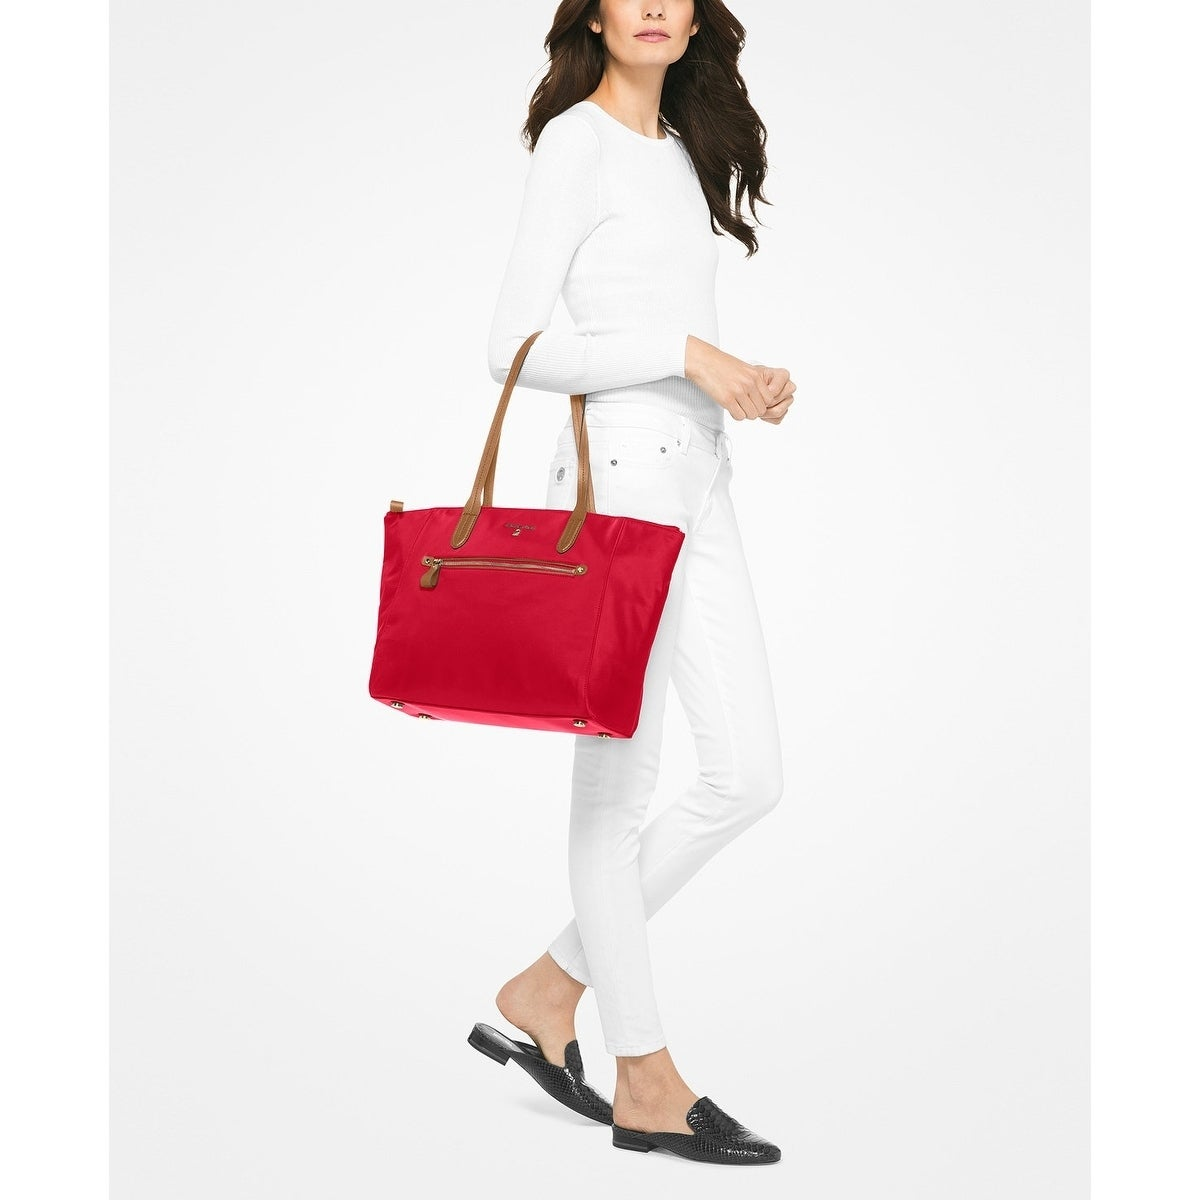 f1b6e5cf4c19 Shop MICHAEL Michael Kors Kelsey Large Top-Zip Tote Bright Red - Free  Shipping Today - Overstock - 19482793